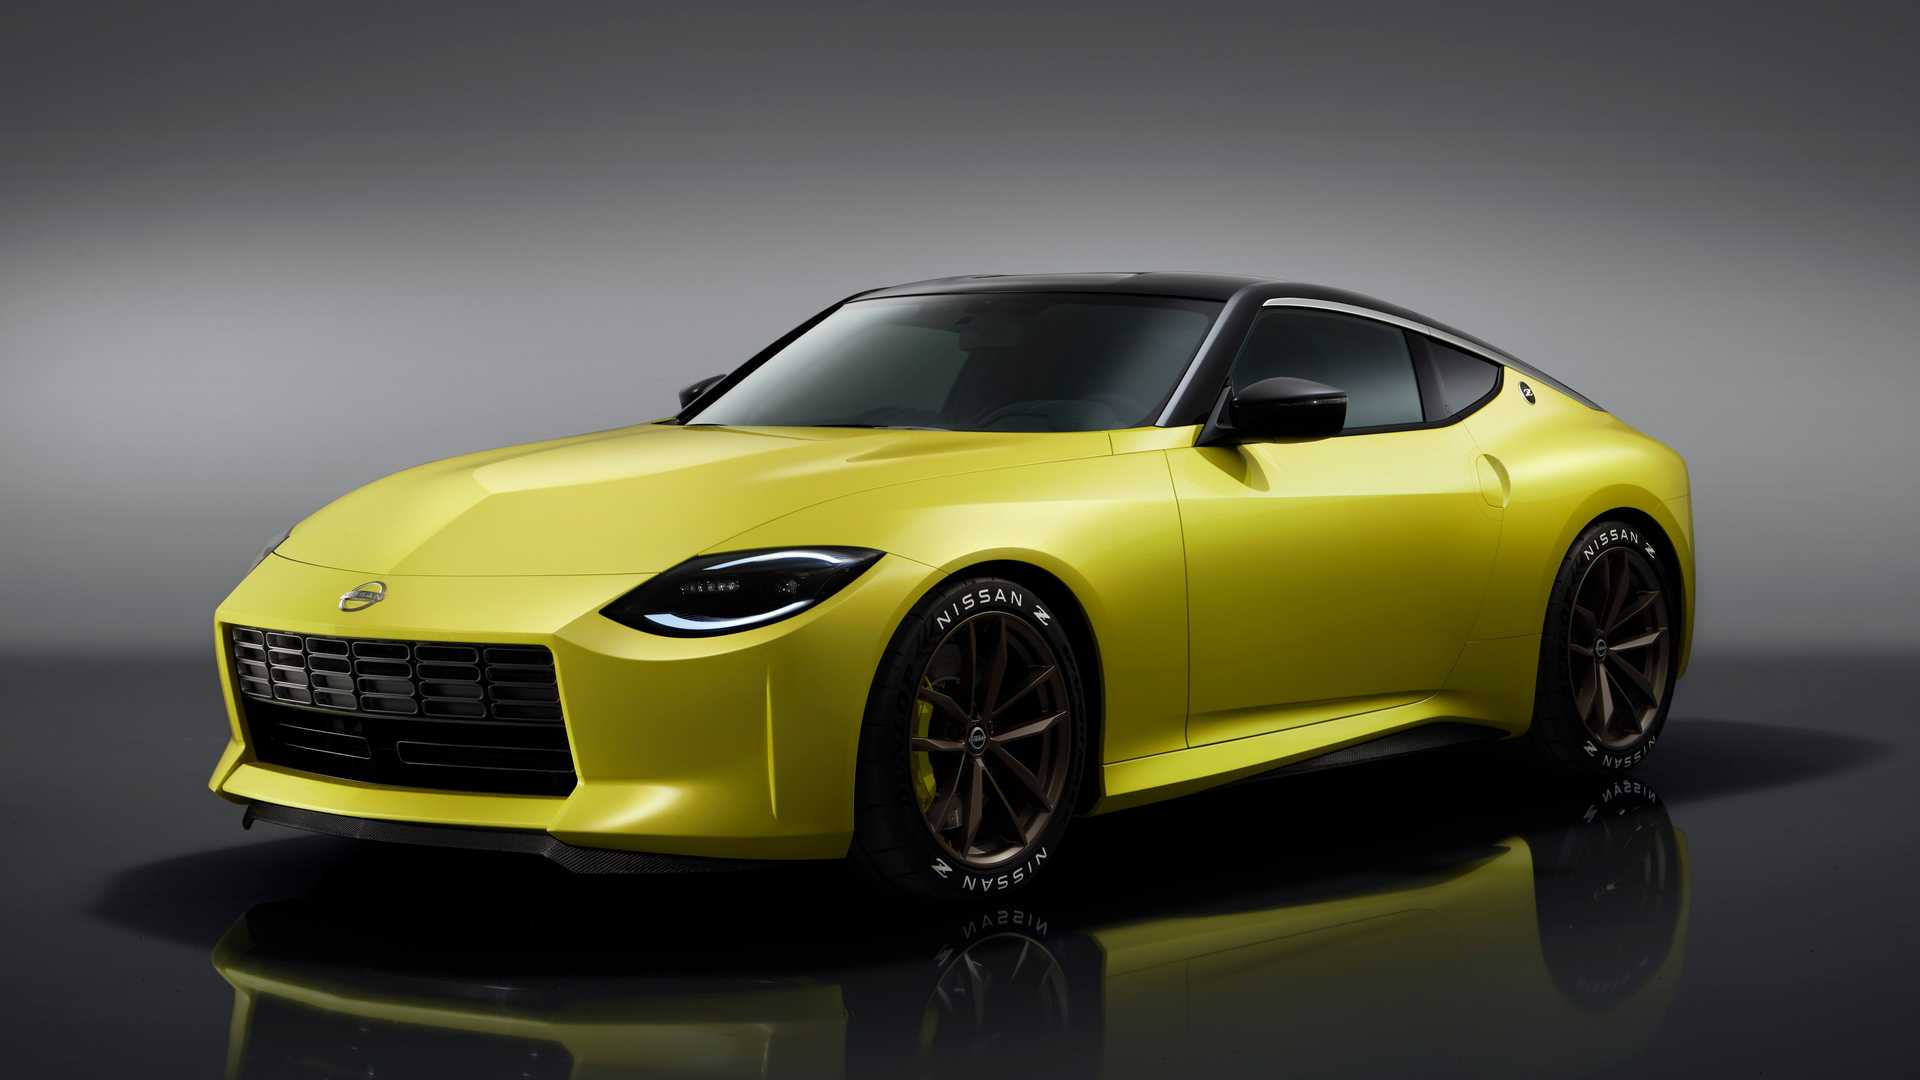 Meet the Z Proto Concept, a Nissan-branded design study which will eventually crystallize into the successor to the iconic 370Z.